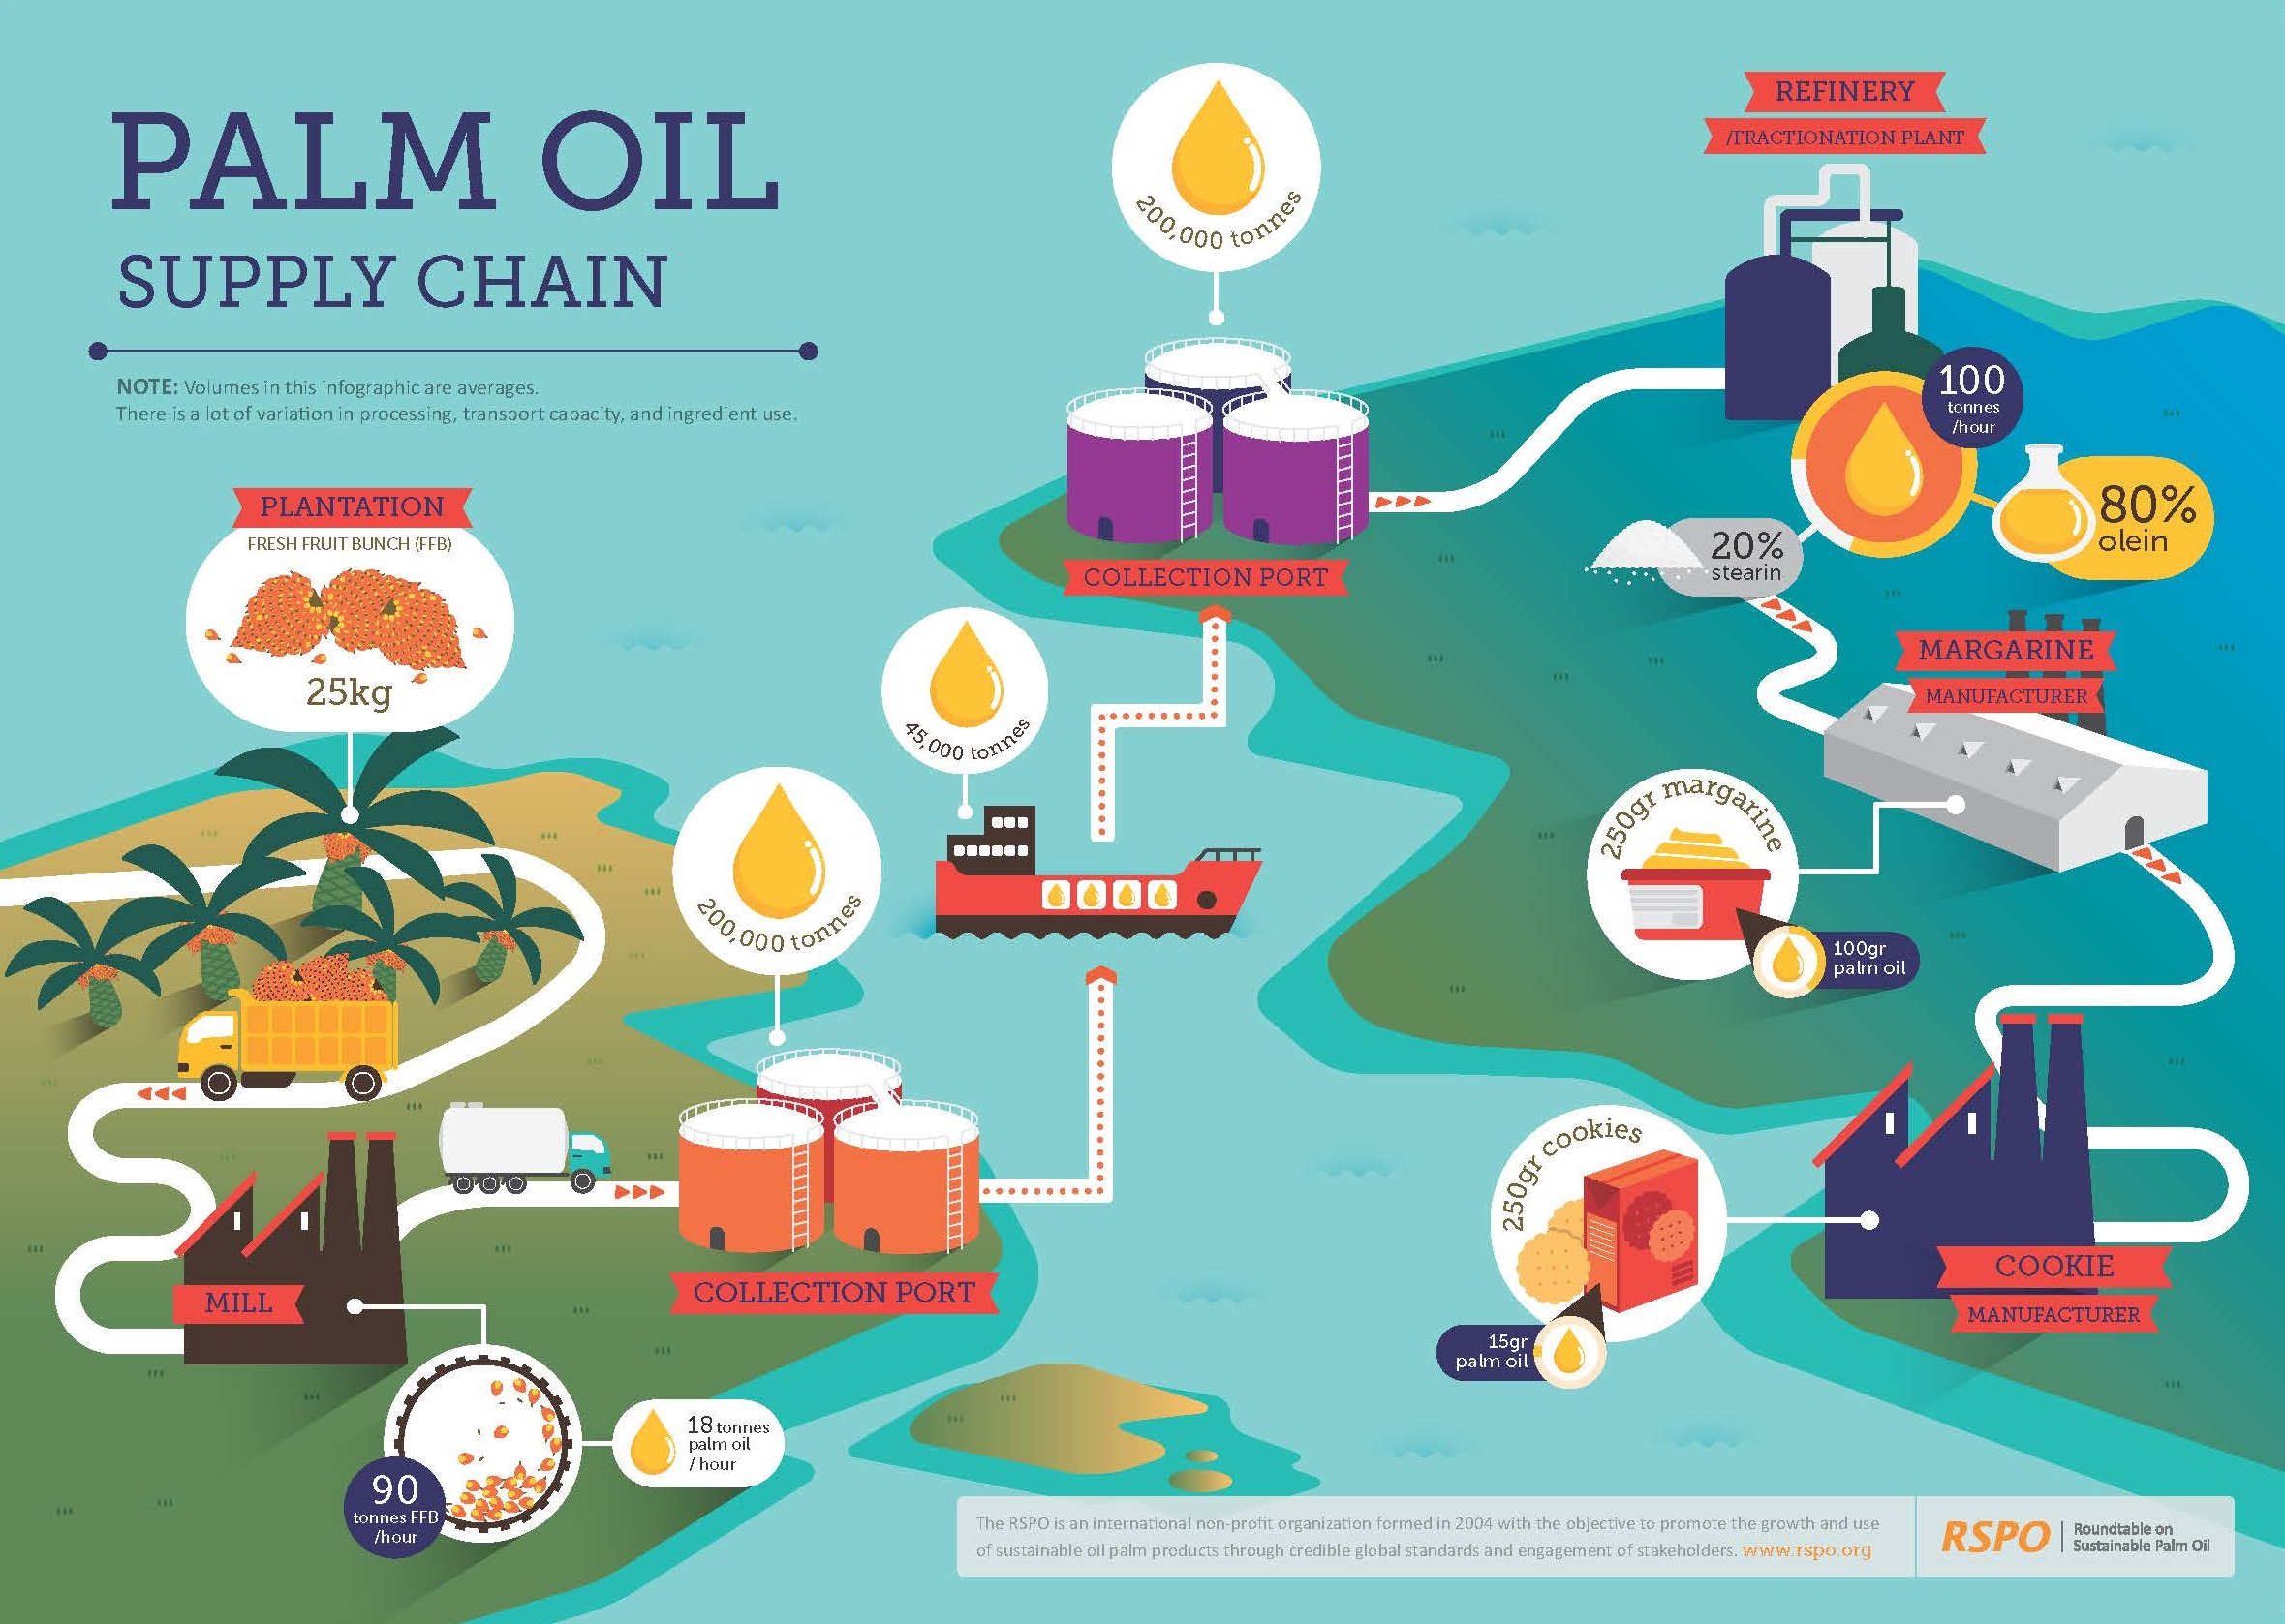 Palm oil supply chain